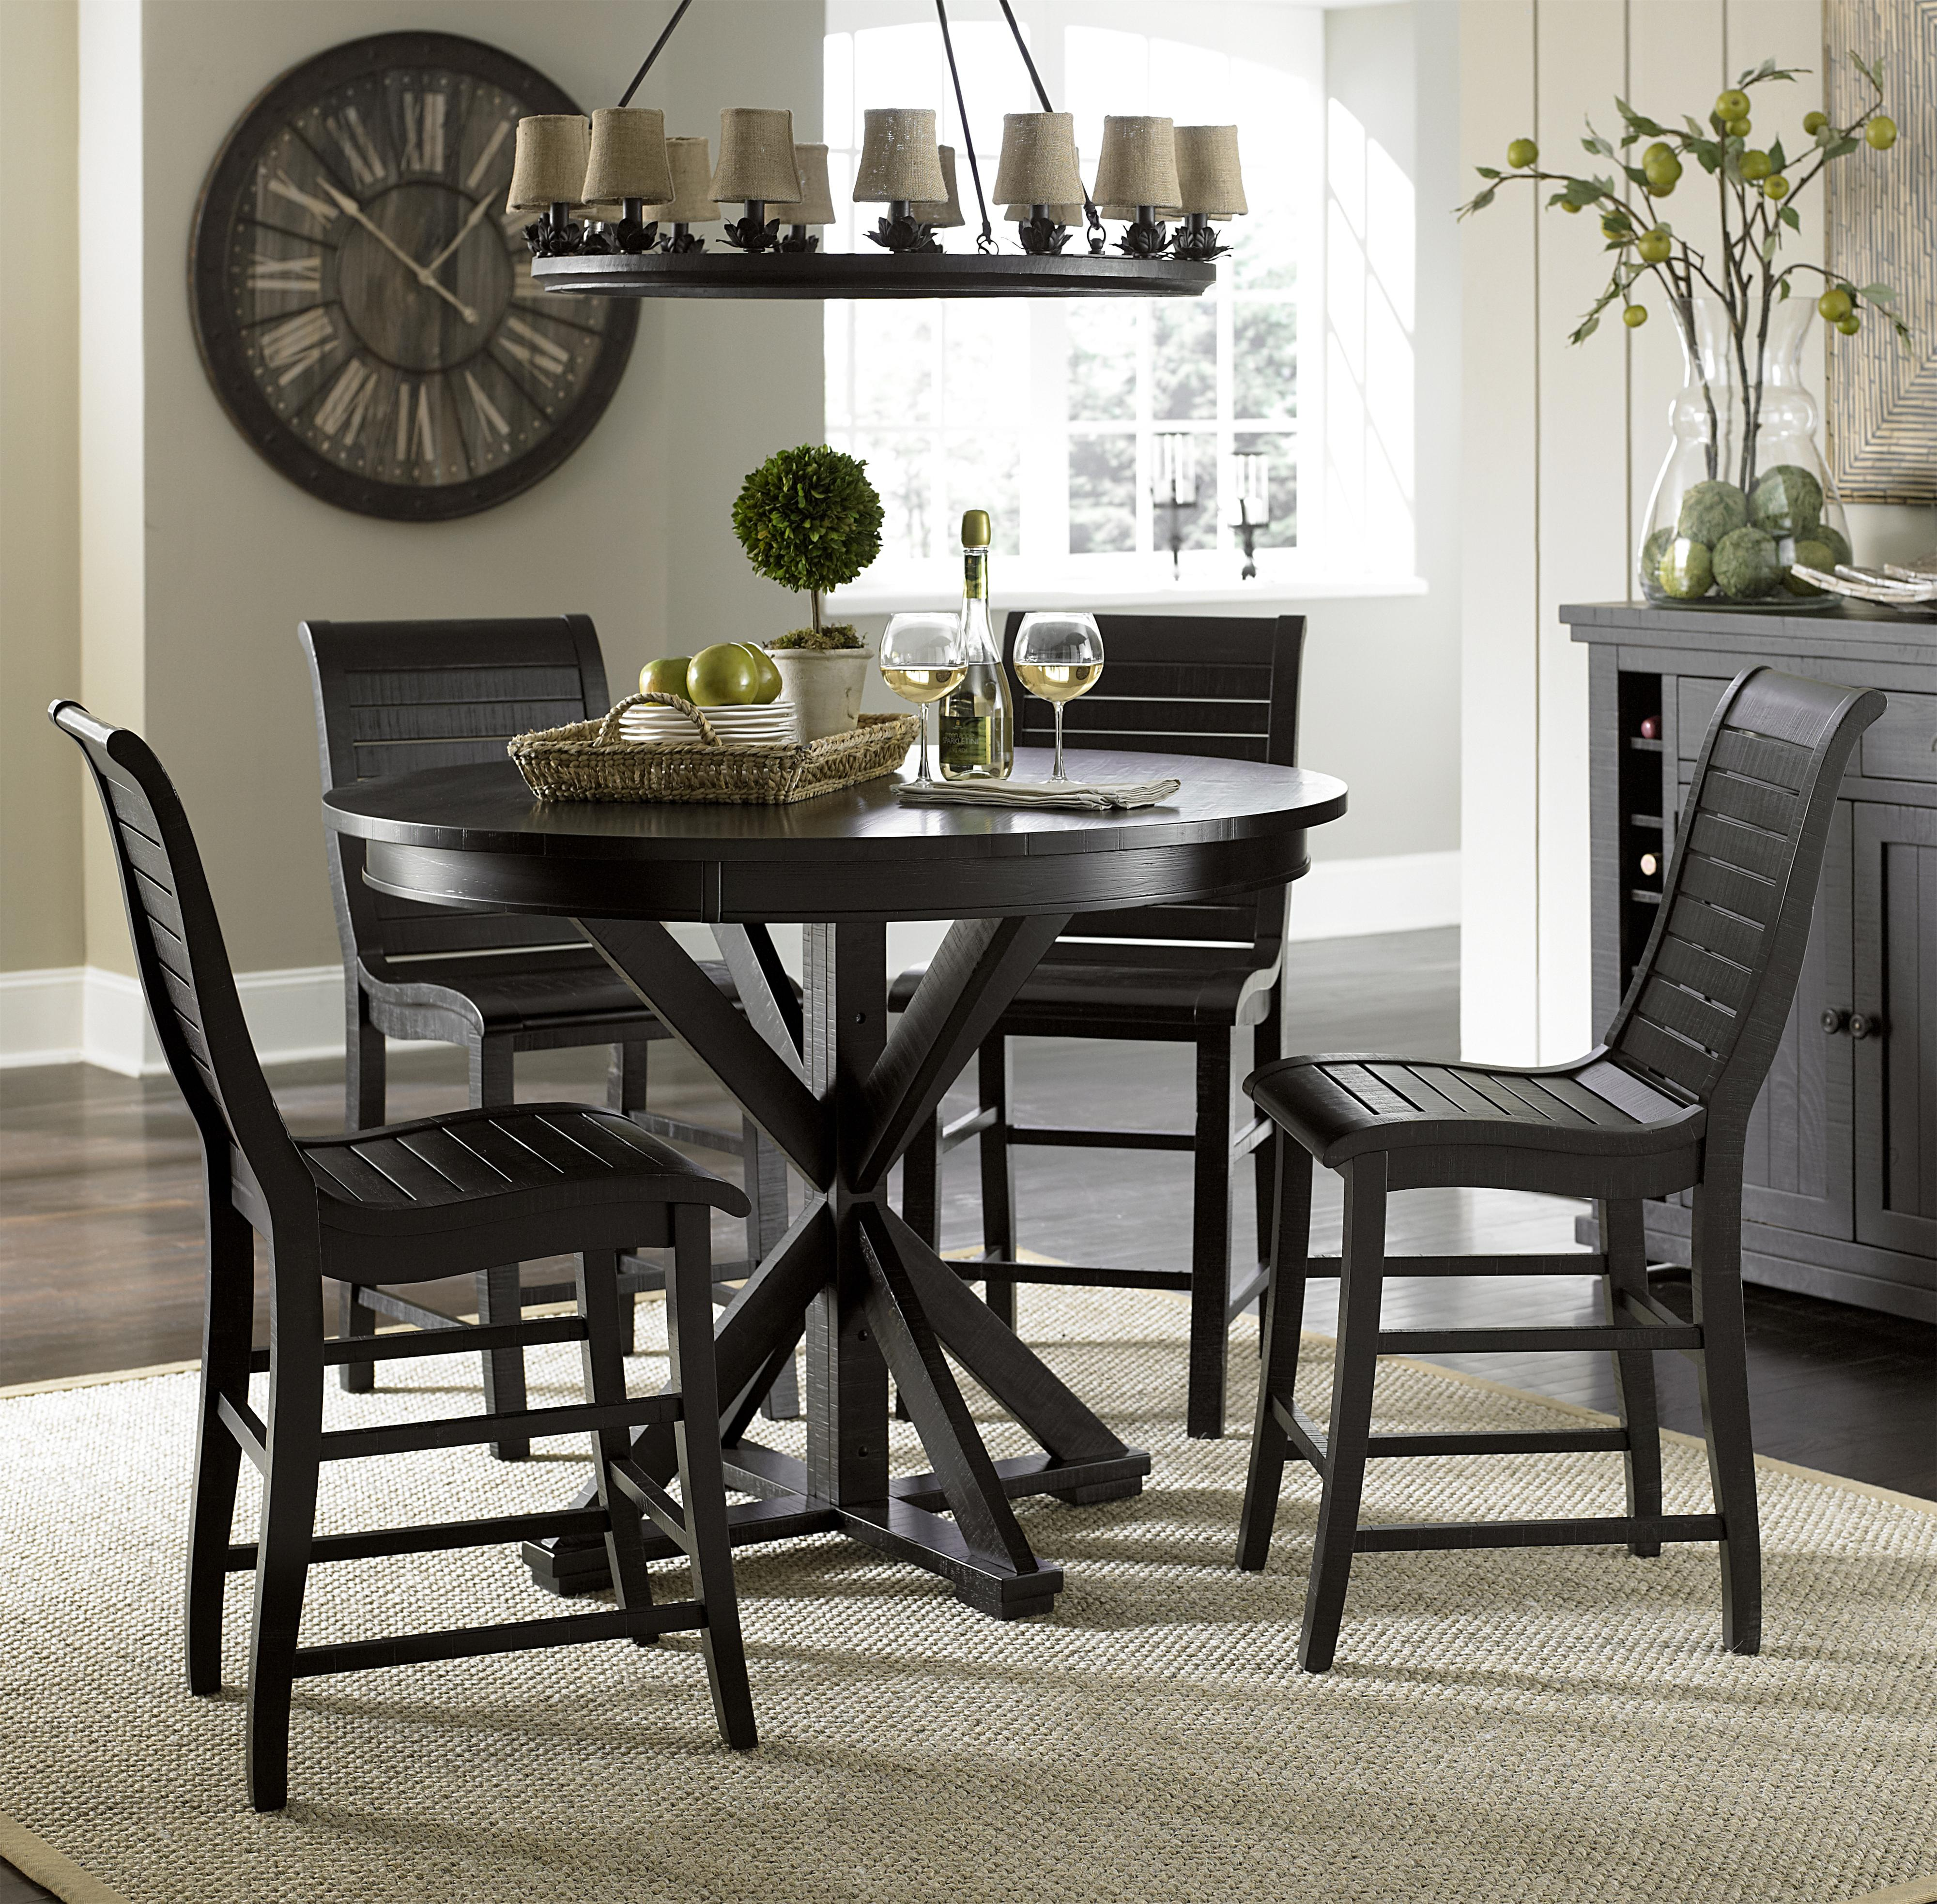 Progressive furniture willow dining 5 piece round counter for Hudsons furniture